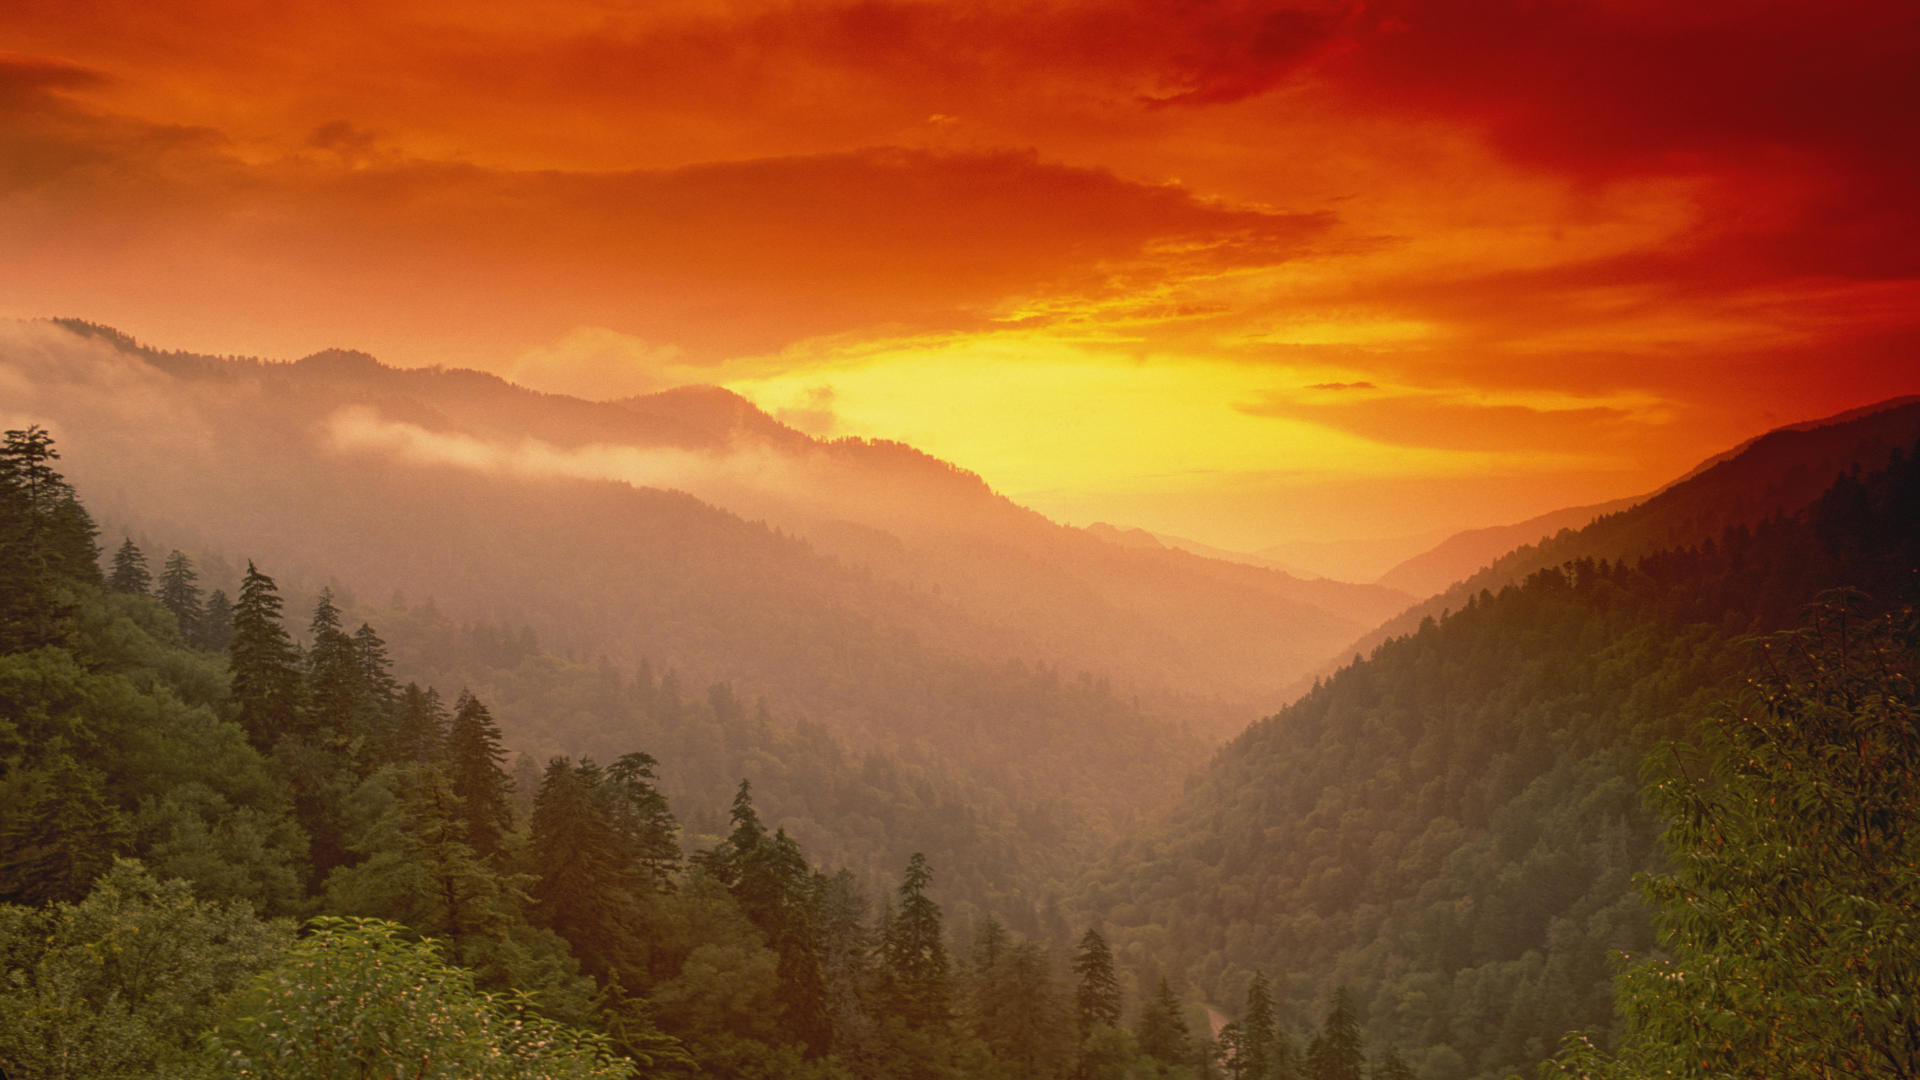 Smoky Mountains Iphone Wallpaper Cool Mountain Background Wallpapers 58 Images